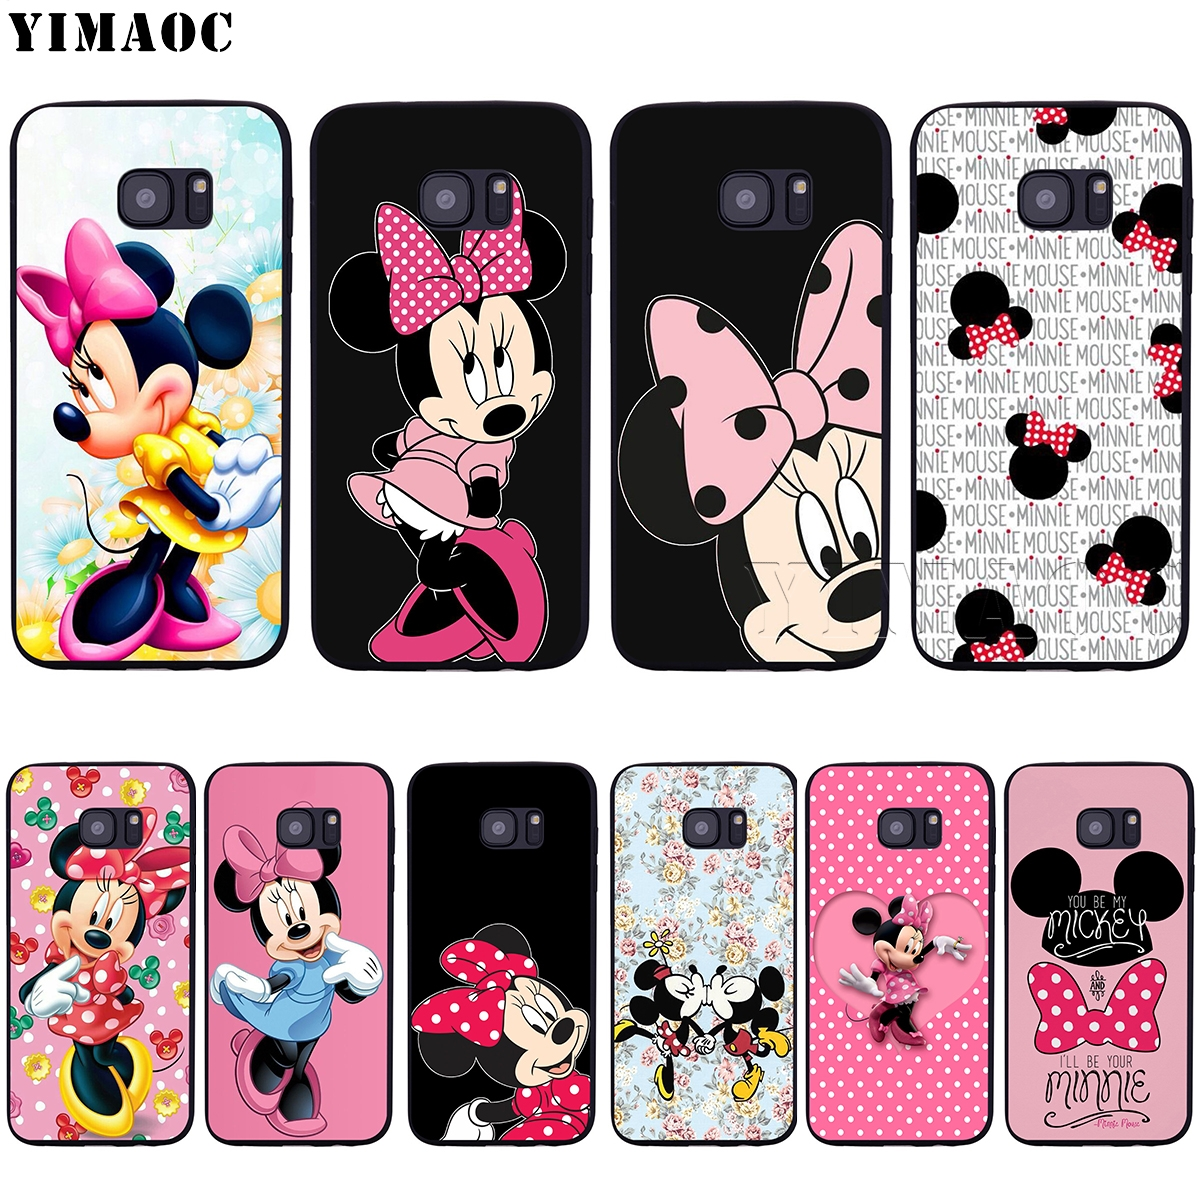 YIMAOC Minnie Mouse Soft Silicone Case for Samsung Galaxy S6 S7 Edge S8 S9 Plus A3 A5 2016 2017